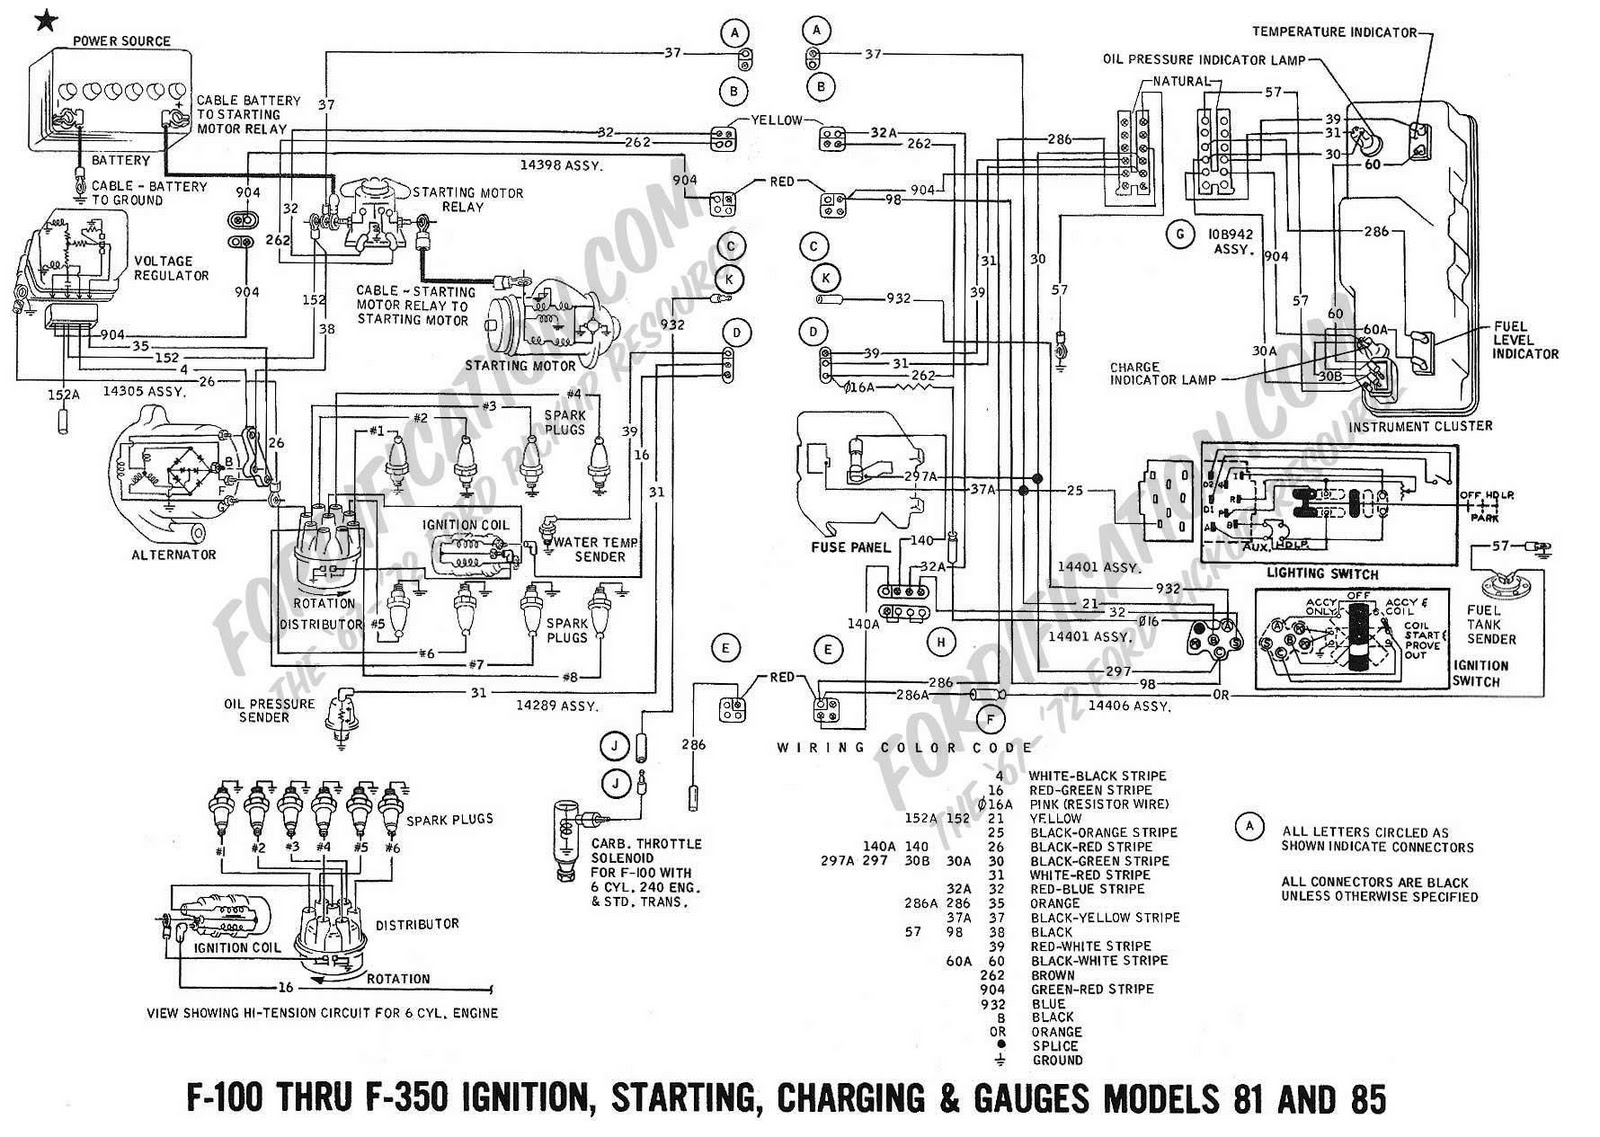 medium resolution of 1968 galaxie wiring diagram wiring diagram schematics 1977 jeep cj7 wiring diagram 1977 ford ltd wiring